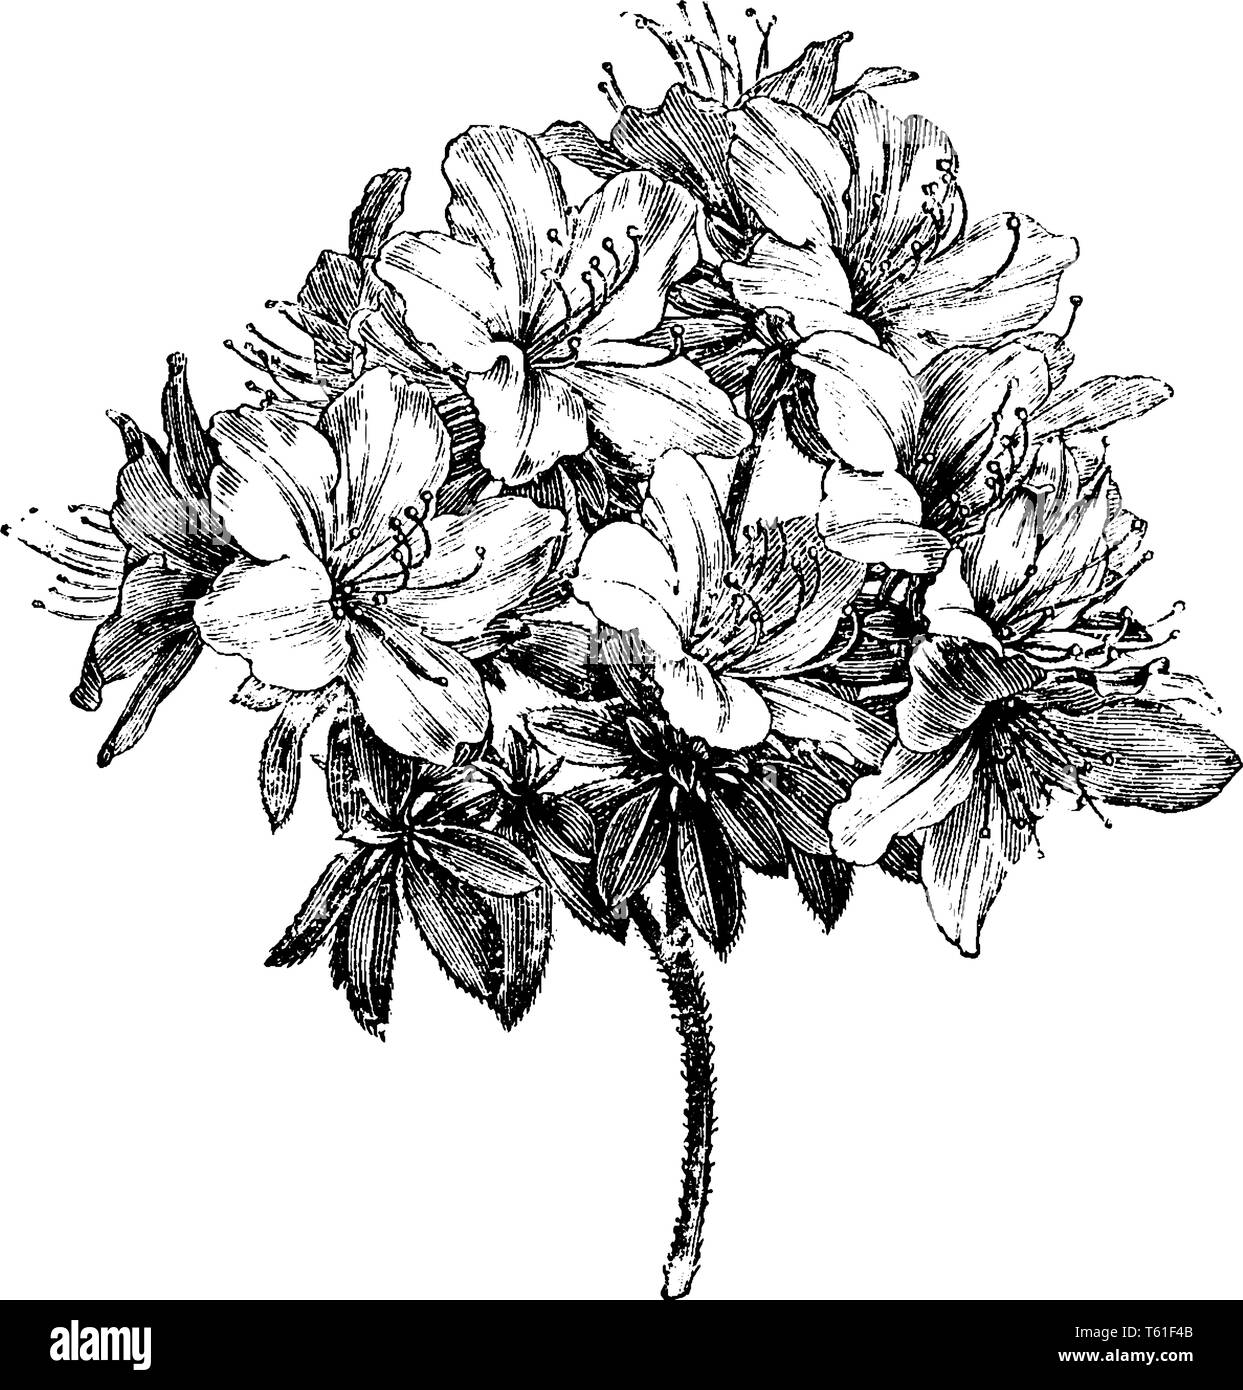 Azalea Ledifolia is a genus of Rhododendron. It is evergreen shrub, with thick, dark-green leaves and clusters of white flowers in summer, vintage lin - Stock Vector